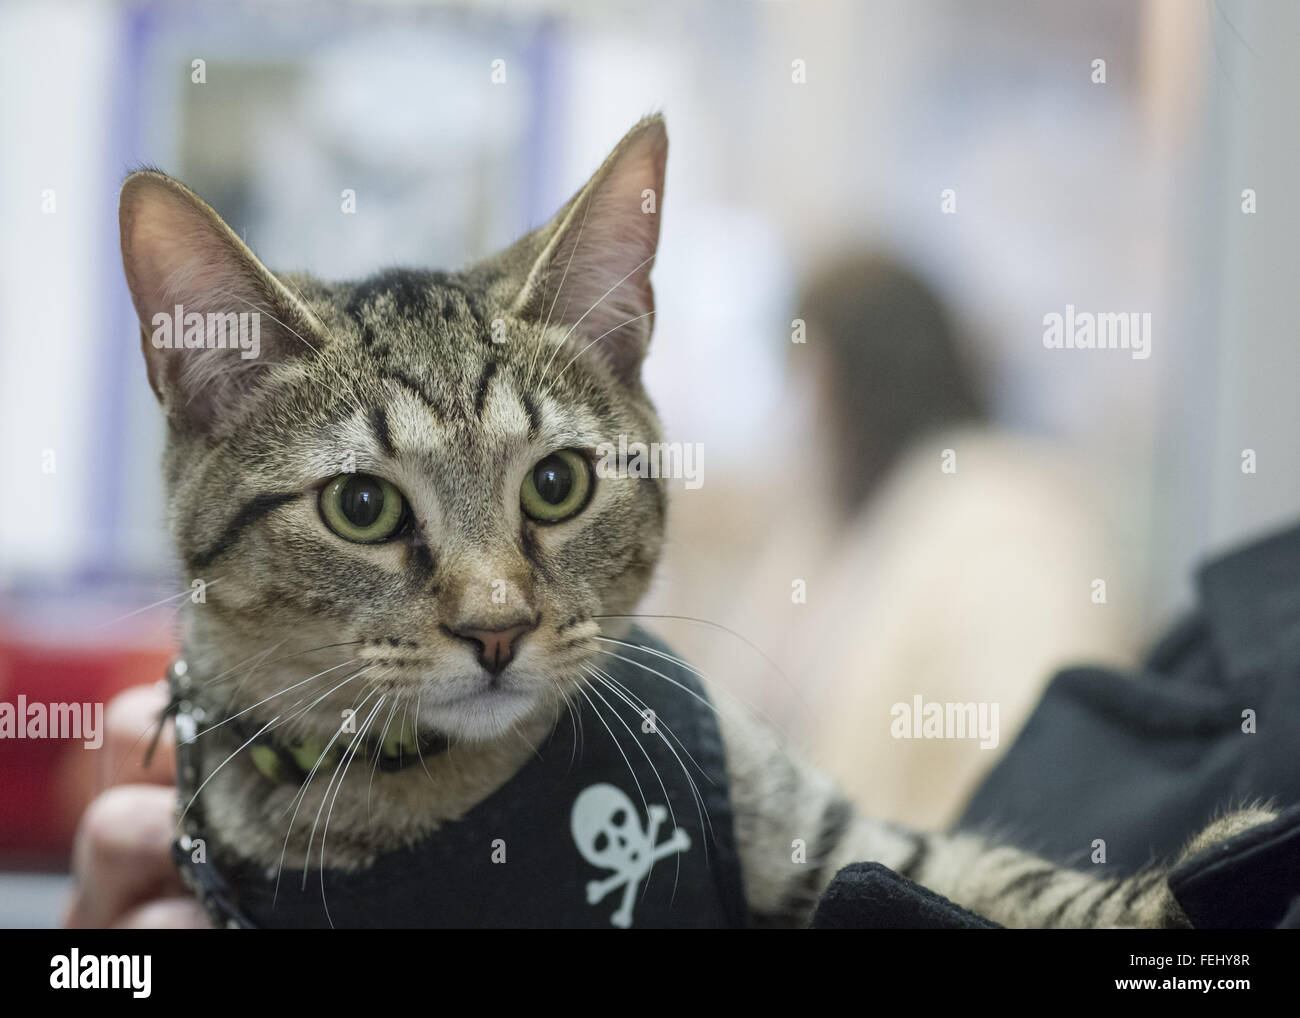 Wantagh, New York, USA. 7th Feb, 2016. Tiger the tabby cat, one of the team players in the Hallmark Channel Kitten - Stock Image